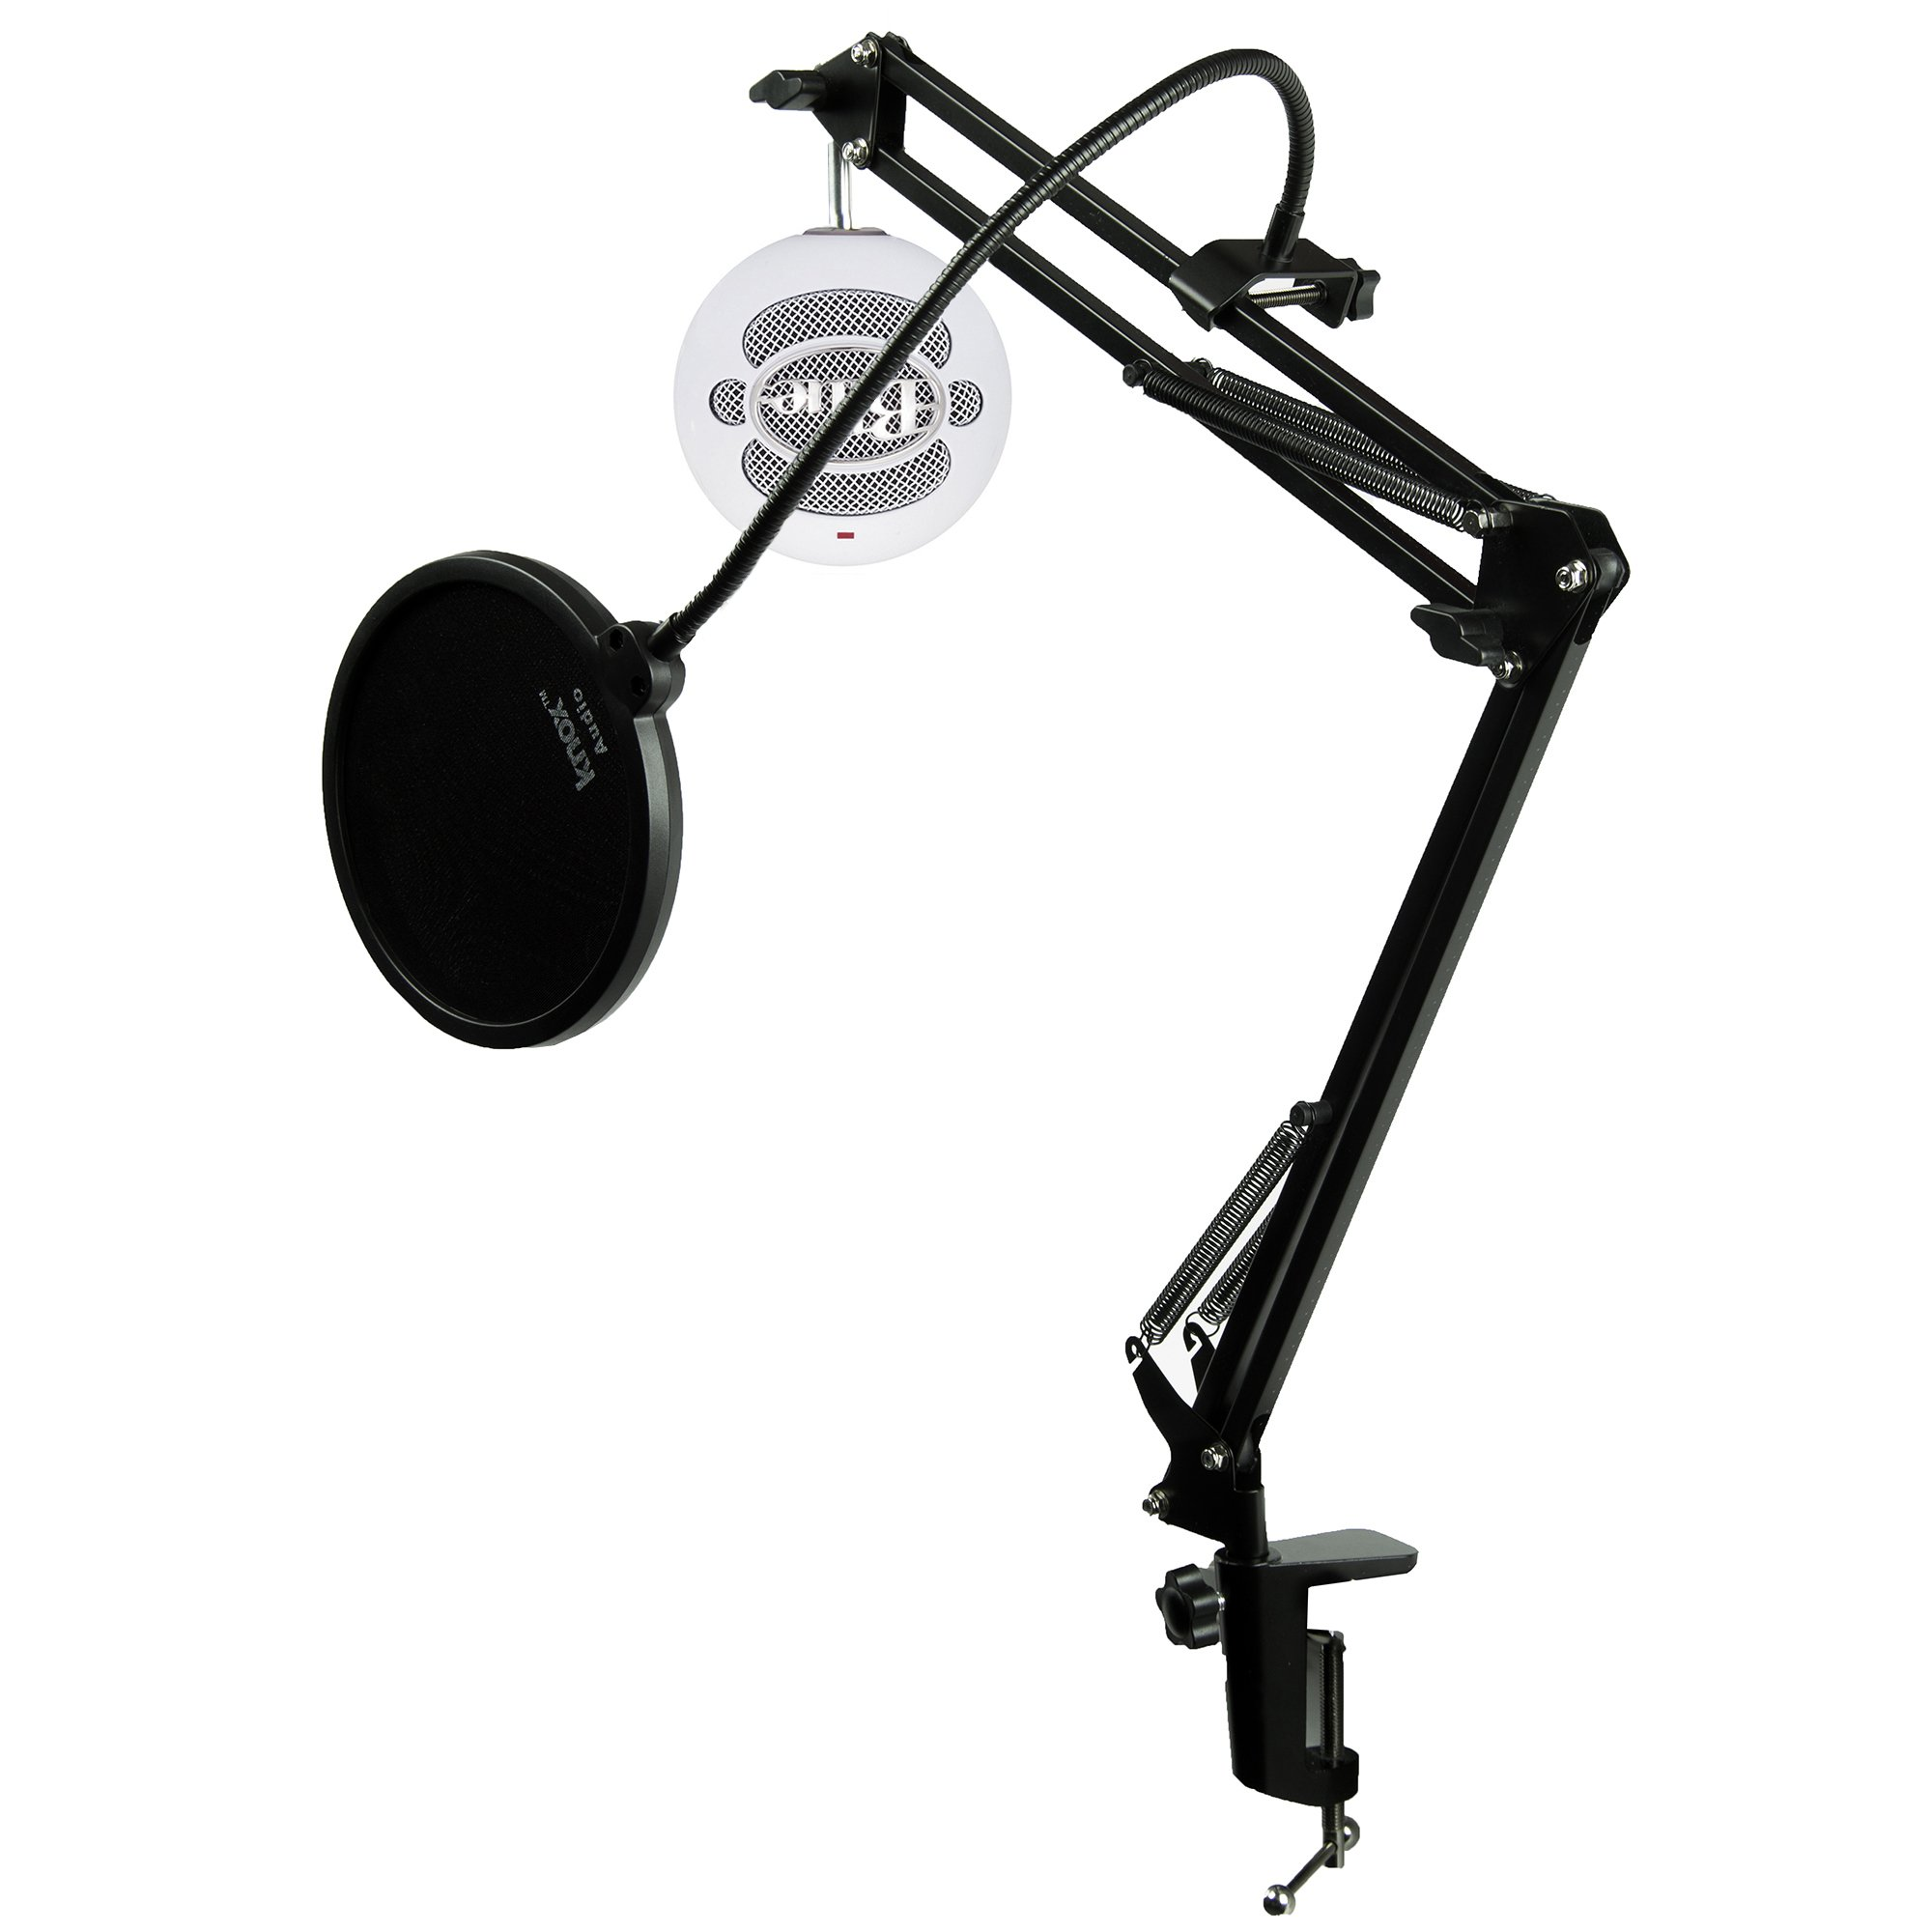 Blue Microphones Snowball iCE USB Microphone with Knox Studio Arm and Pop Filter by Knox